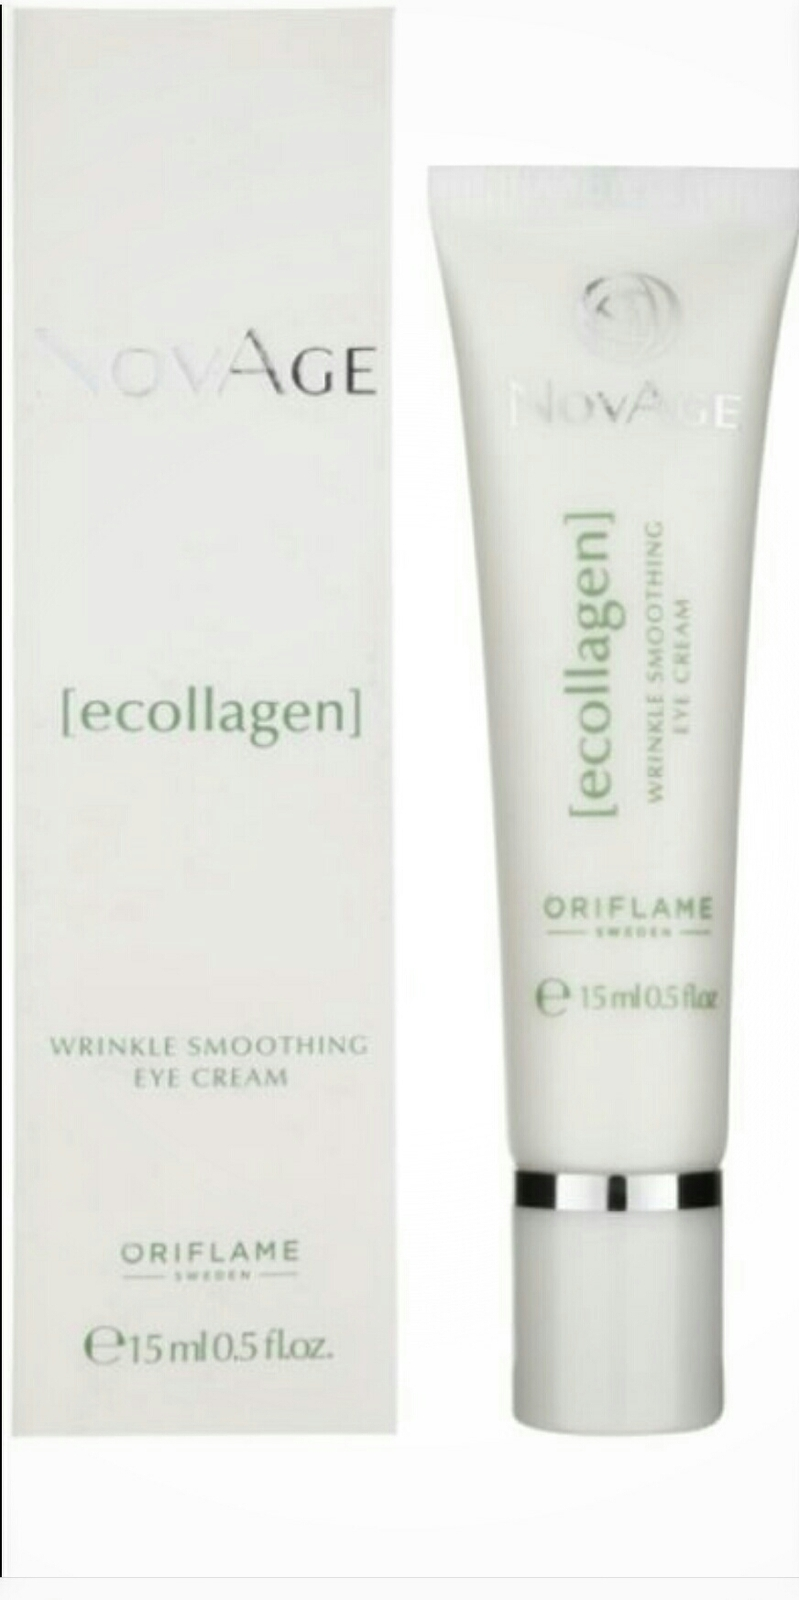 Primary image for Ecollagen Wrinkle Power Eye Cream, NovAge Oriflame, 15ml